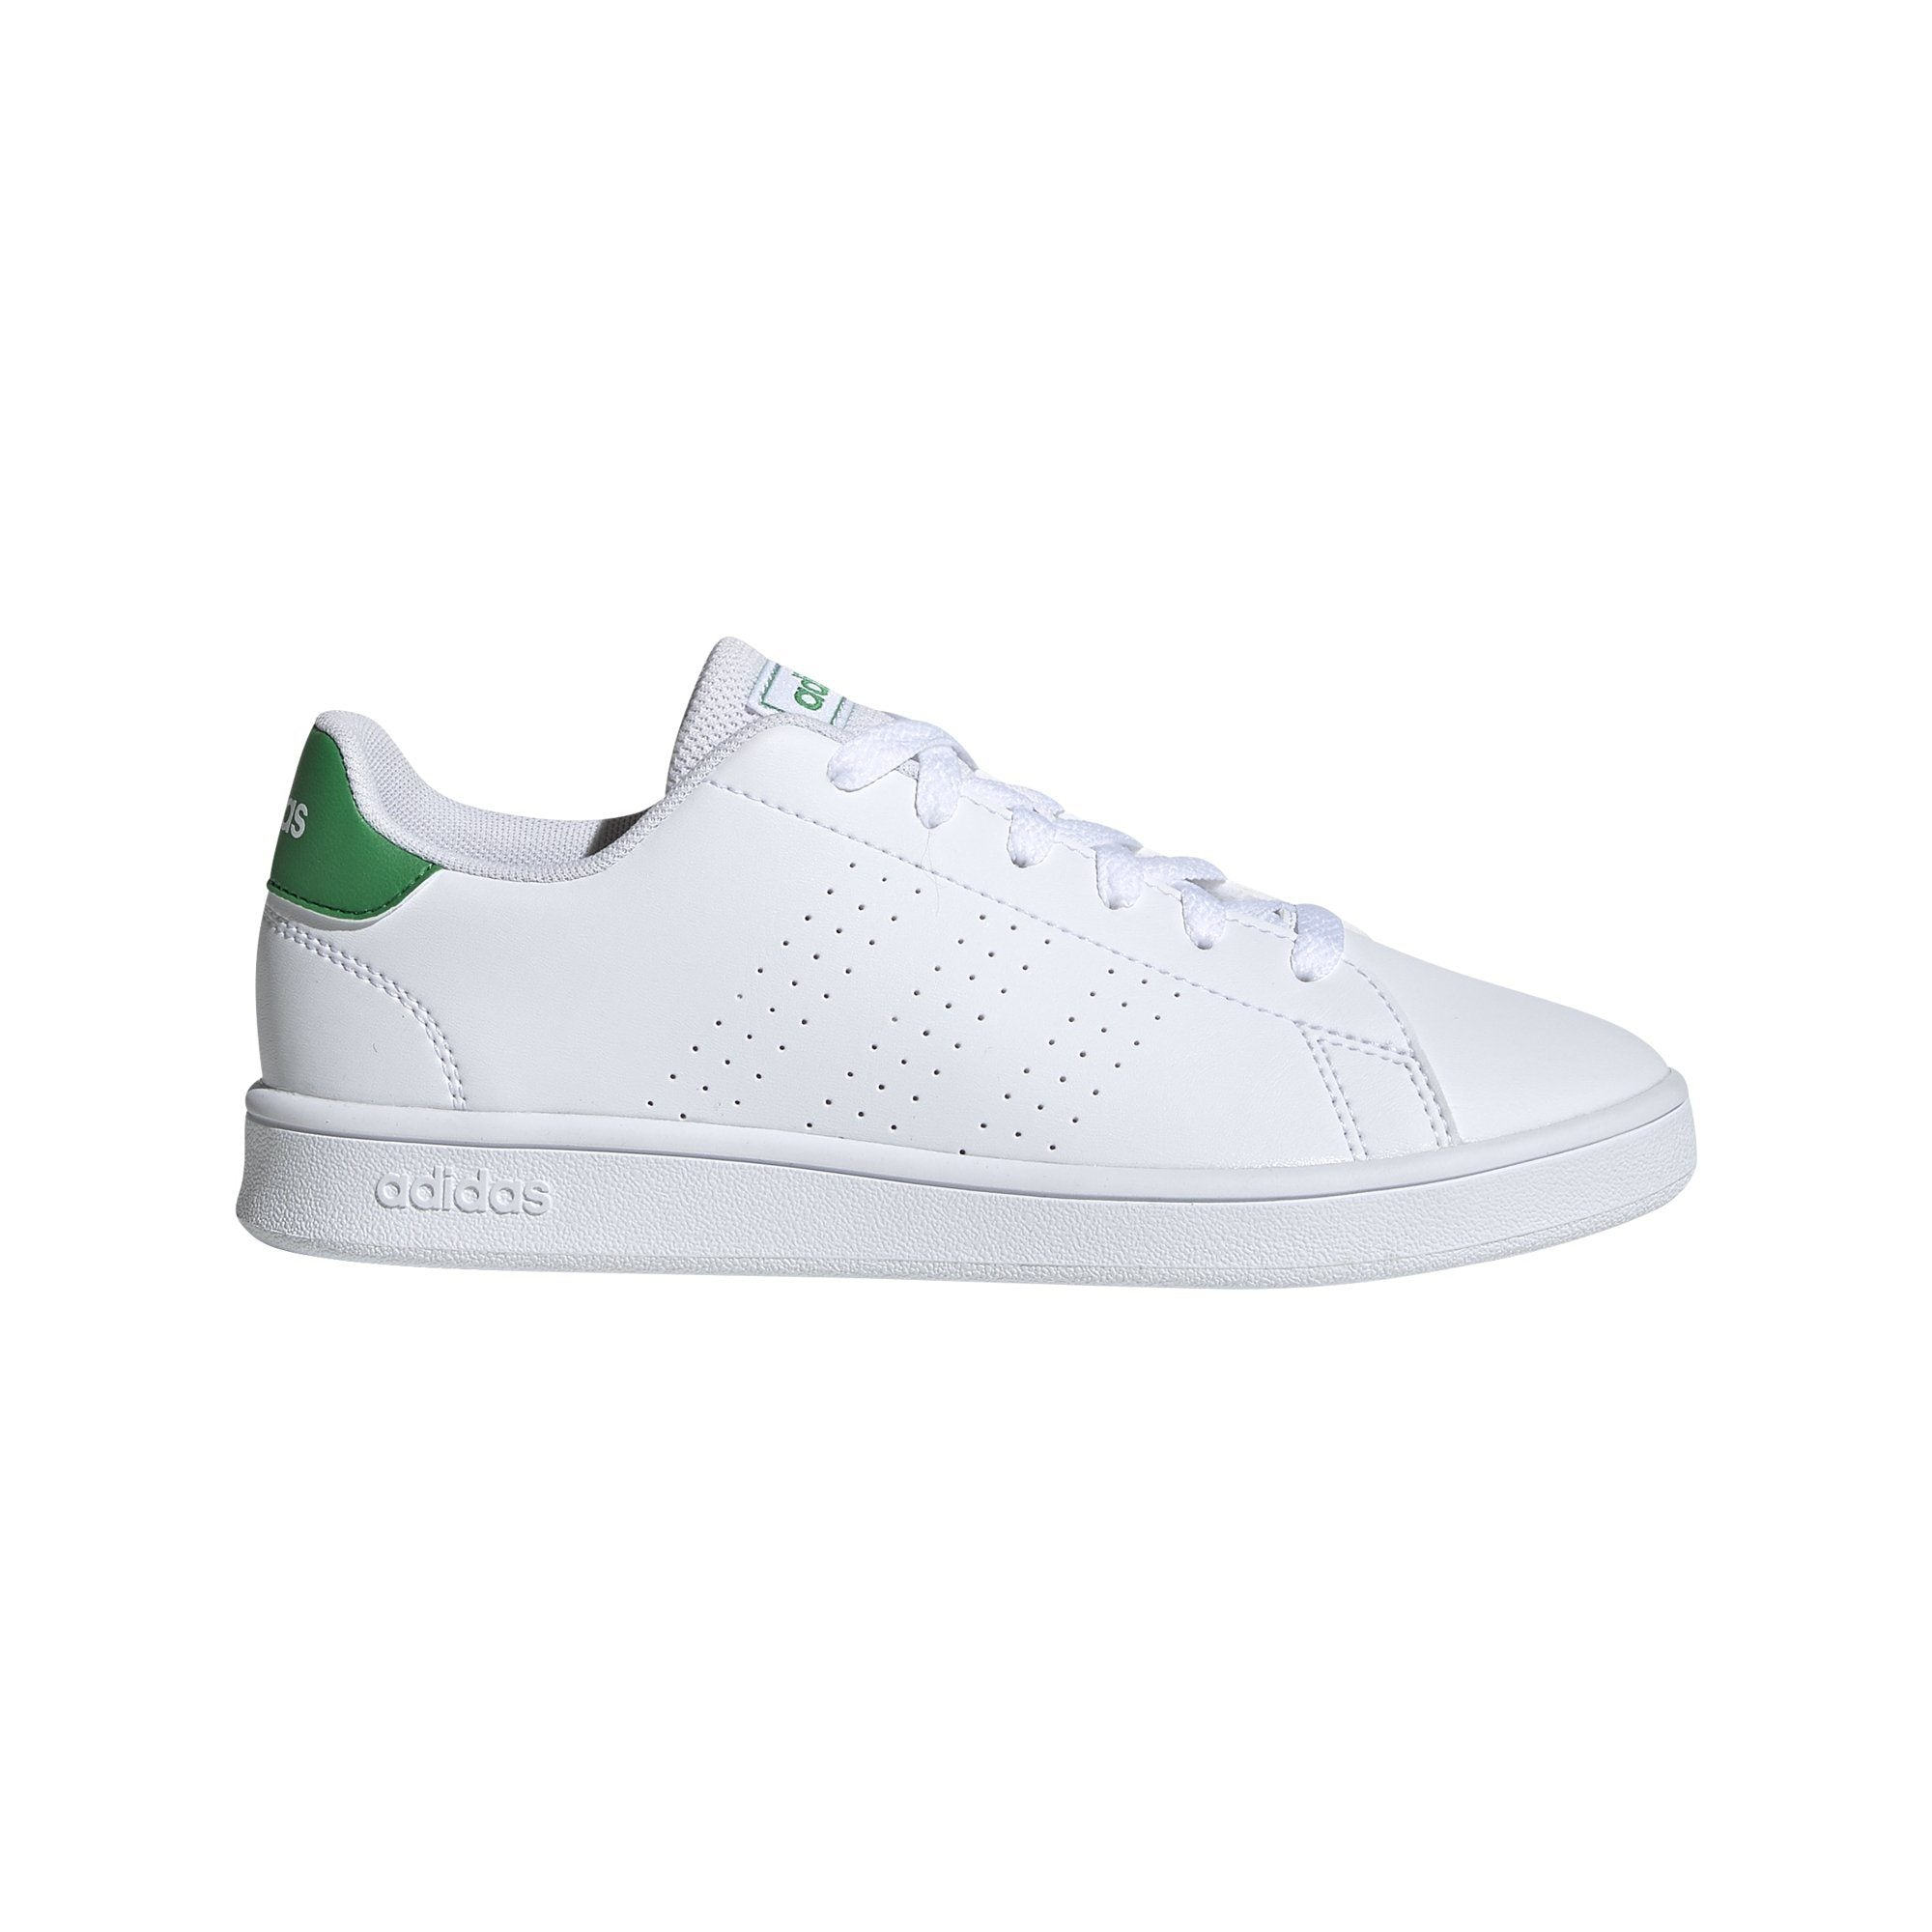 Adidas Kids Advantage Shoes - Ftwr White/Green/Grey Two SP-Footwear-Kids Adidas